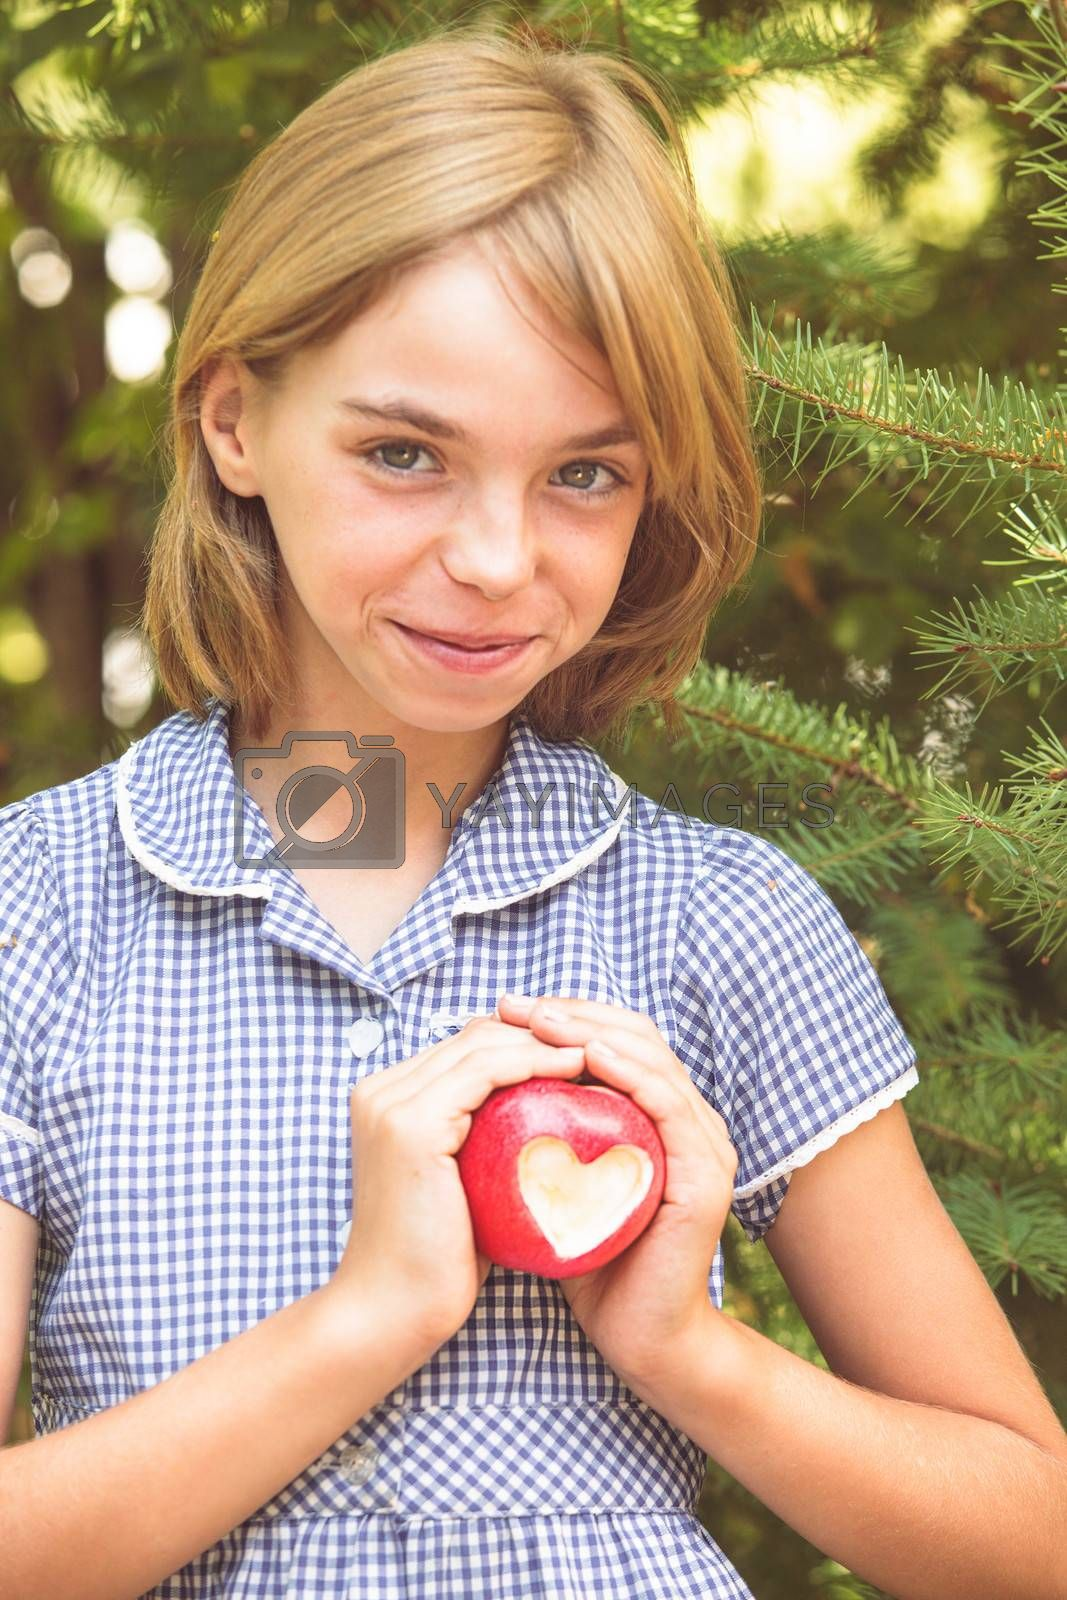 Red apple with heart shape - present of love